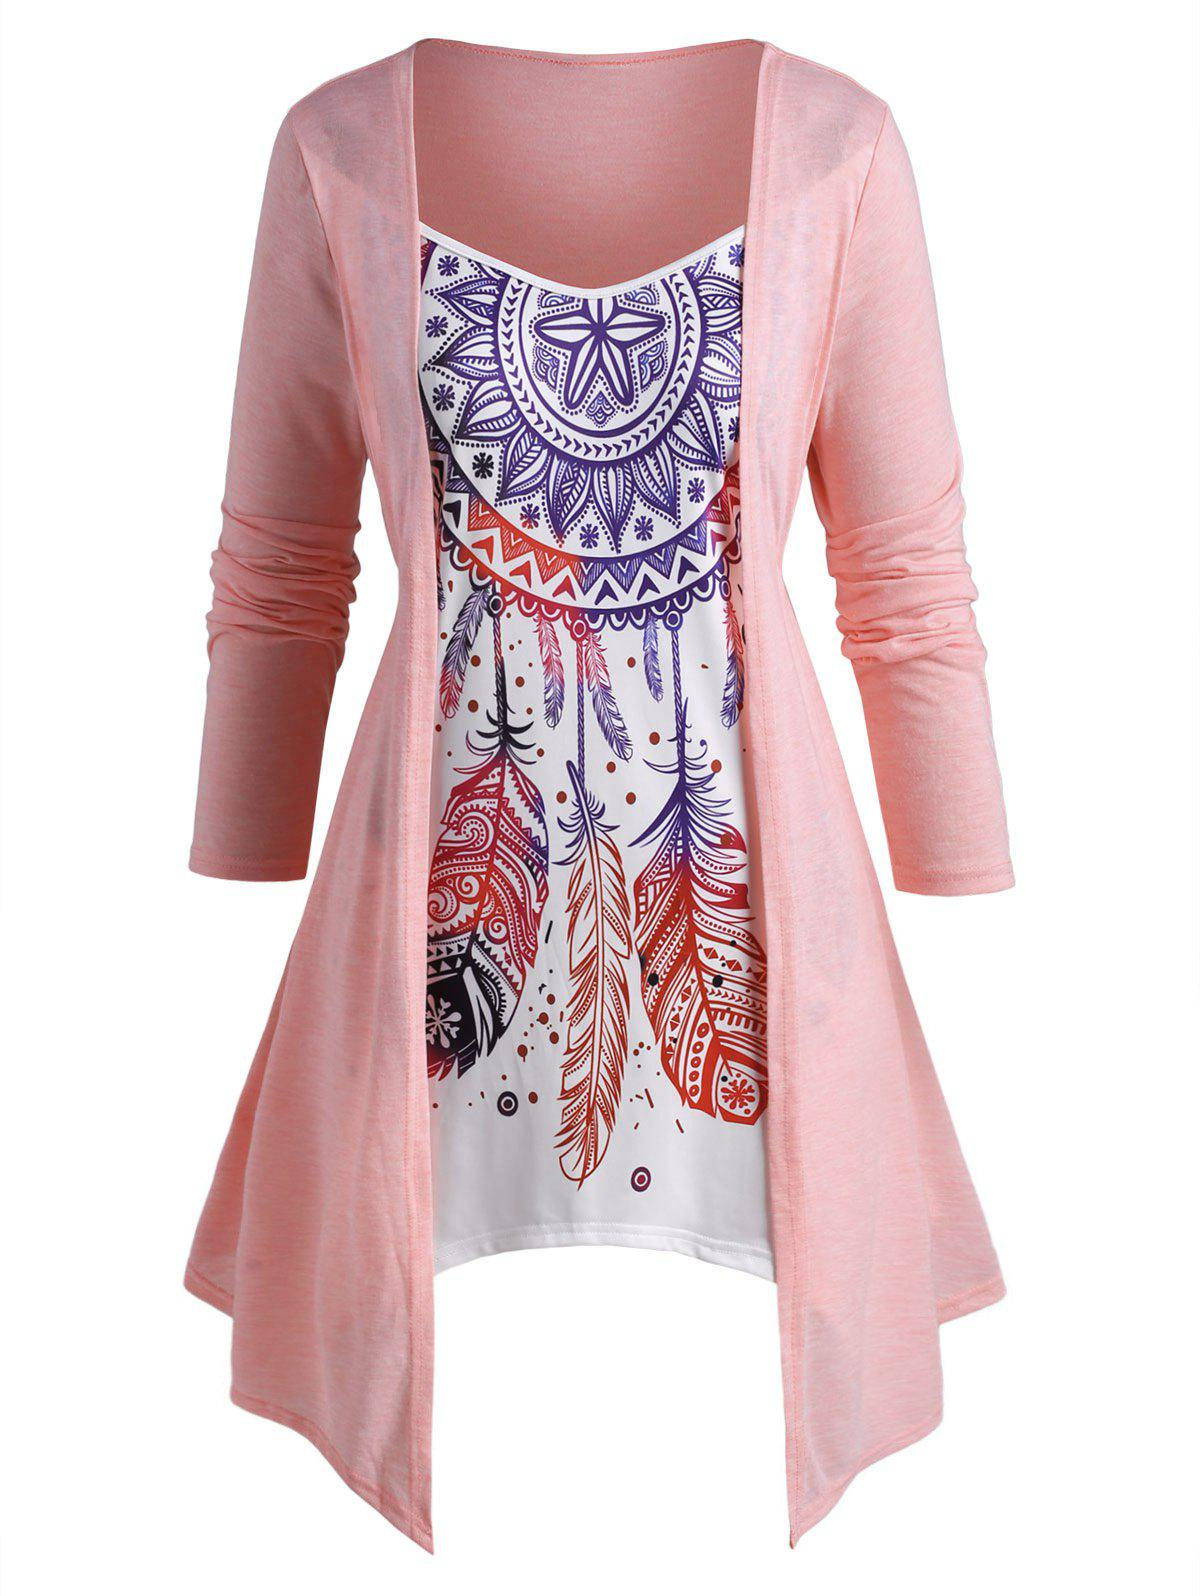 Plus Size Split Front Dreamcatcher Print Faux Twinset Asymmetrical T Shirt - LIGHT PINK 5X